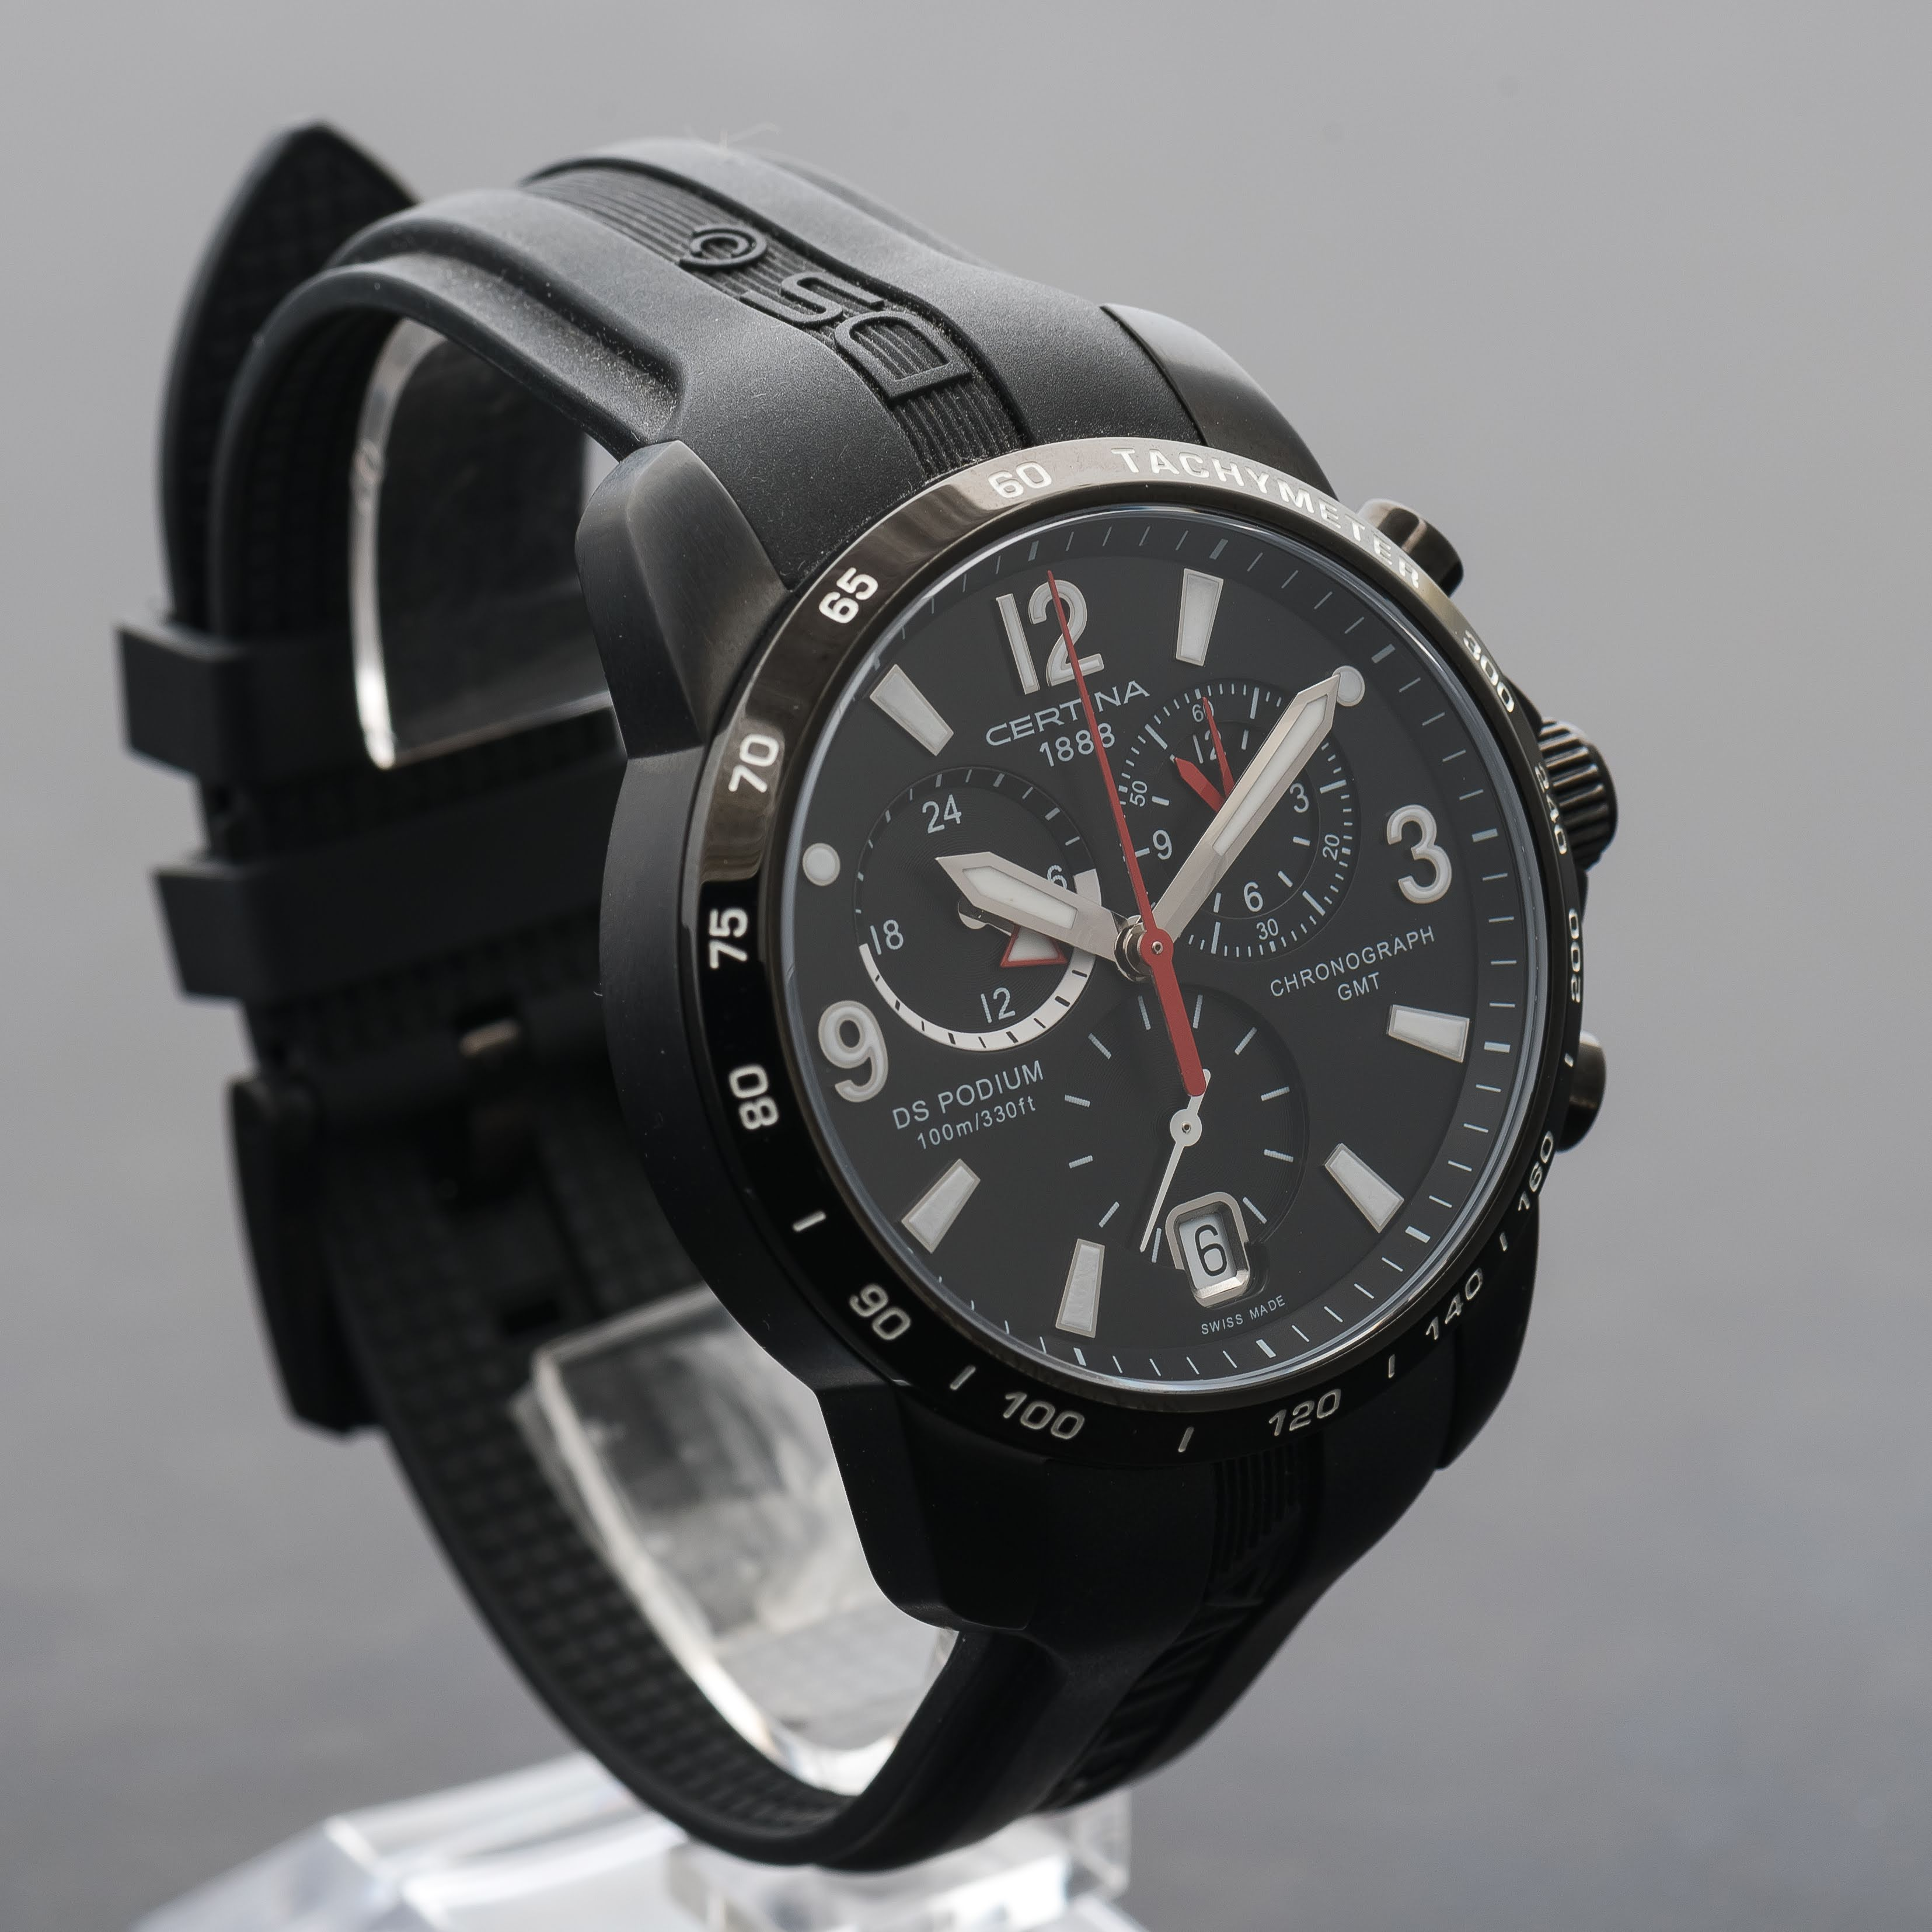 Certina DS Podium GMT Chronograph Big Size Black Dial Men's Watch C0016391605700